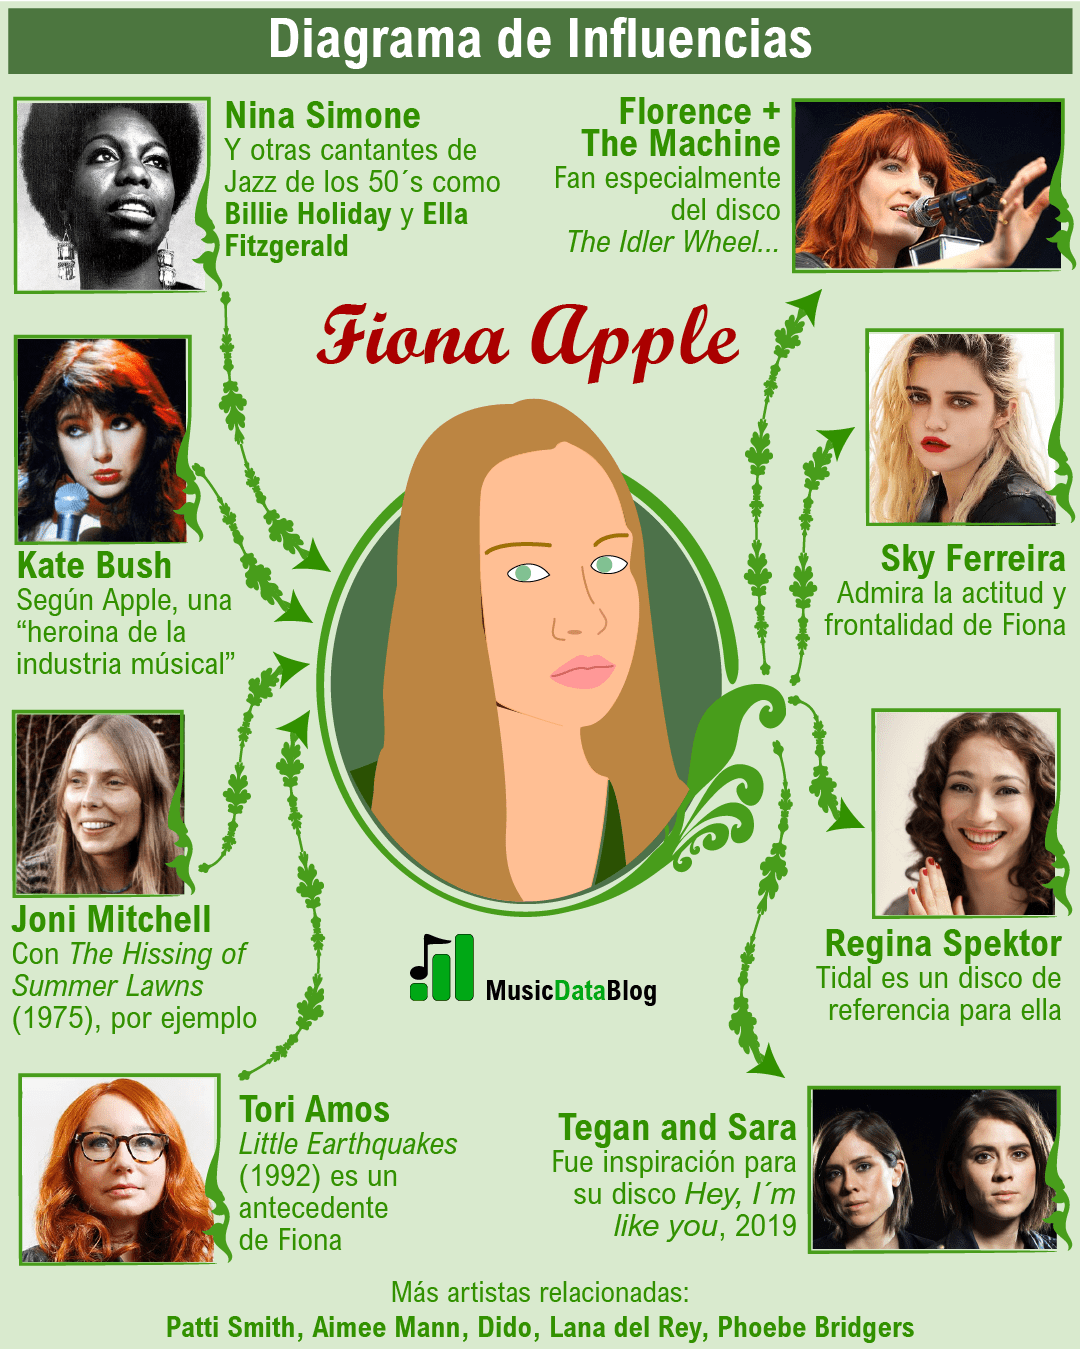 fiona apple influencias infografia